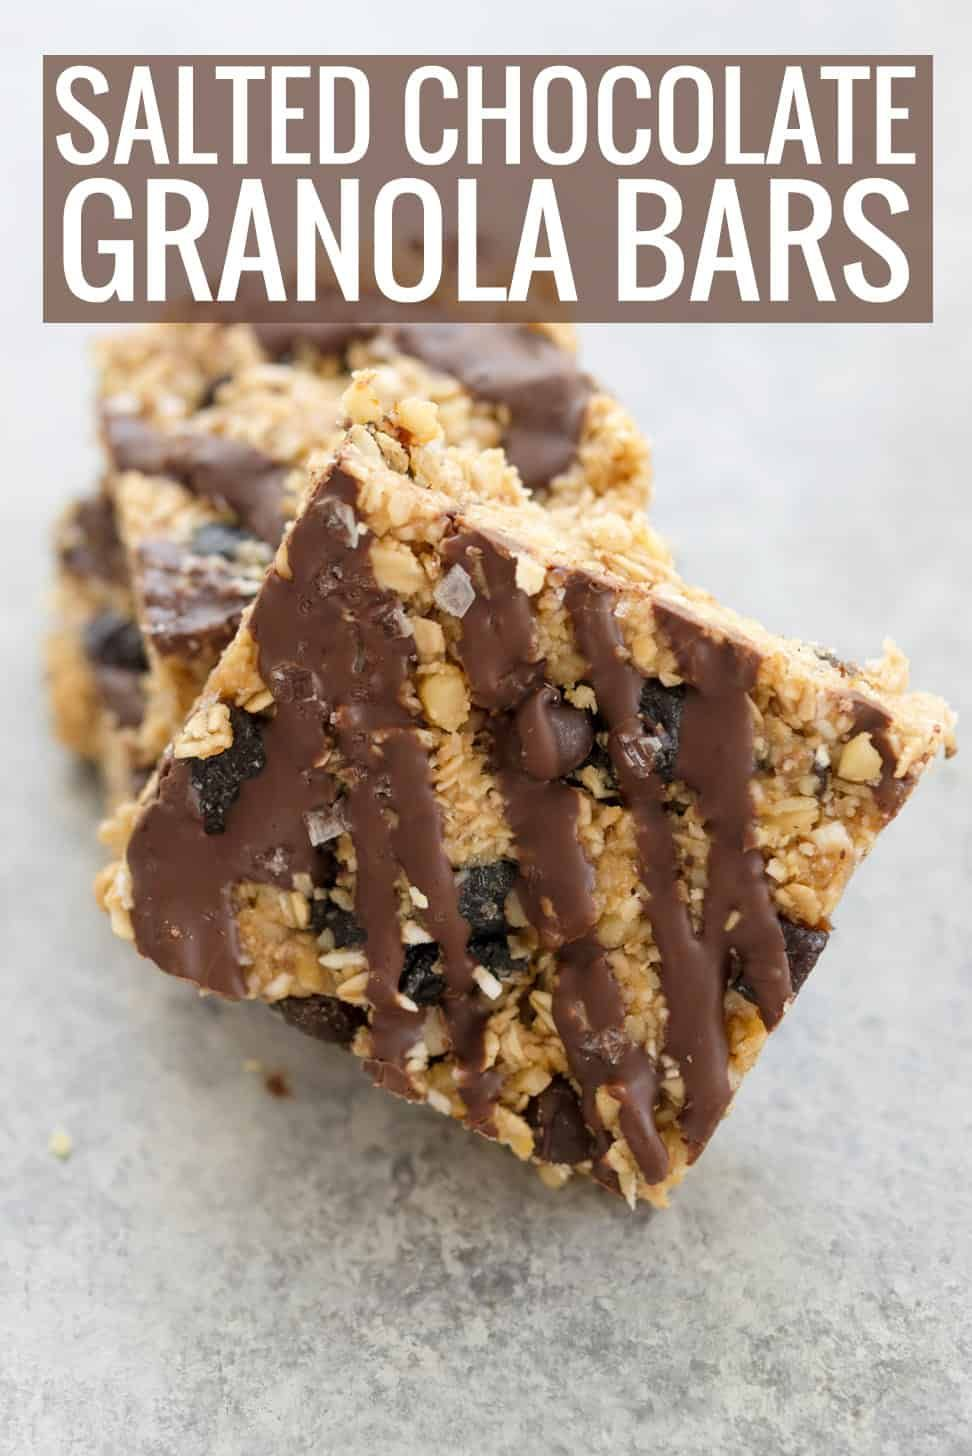 Kitchen Sink Bars These Salted Chocolate Granola Are Amazing Packed With Oats Prunes Coconut Peanut Er And More